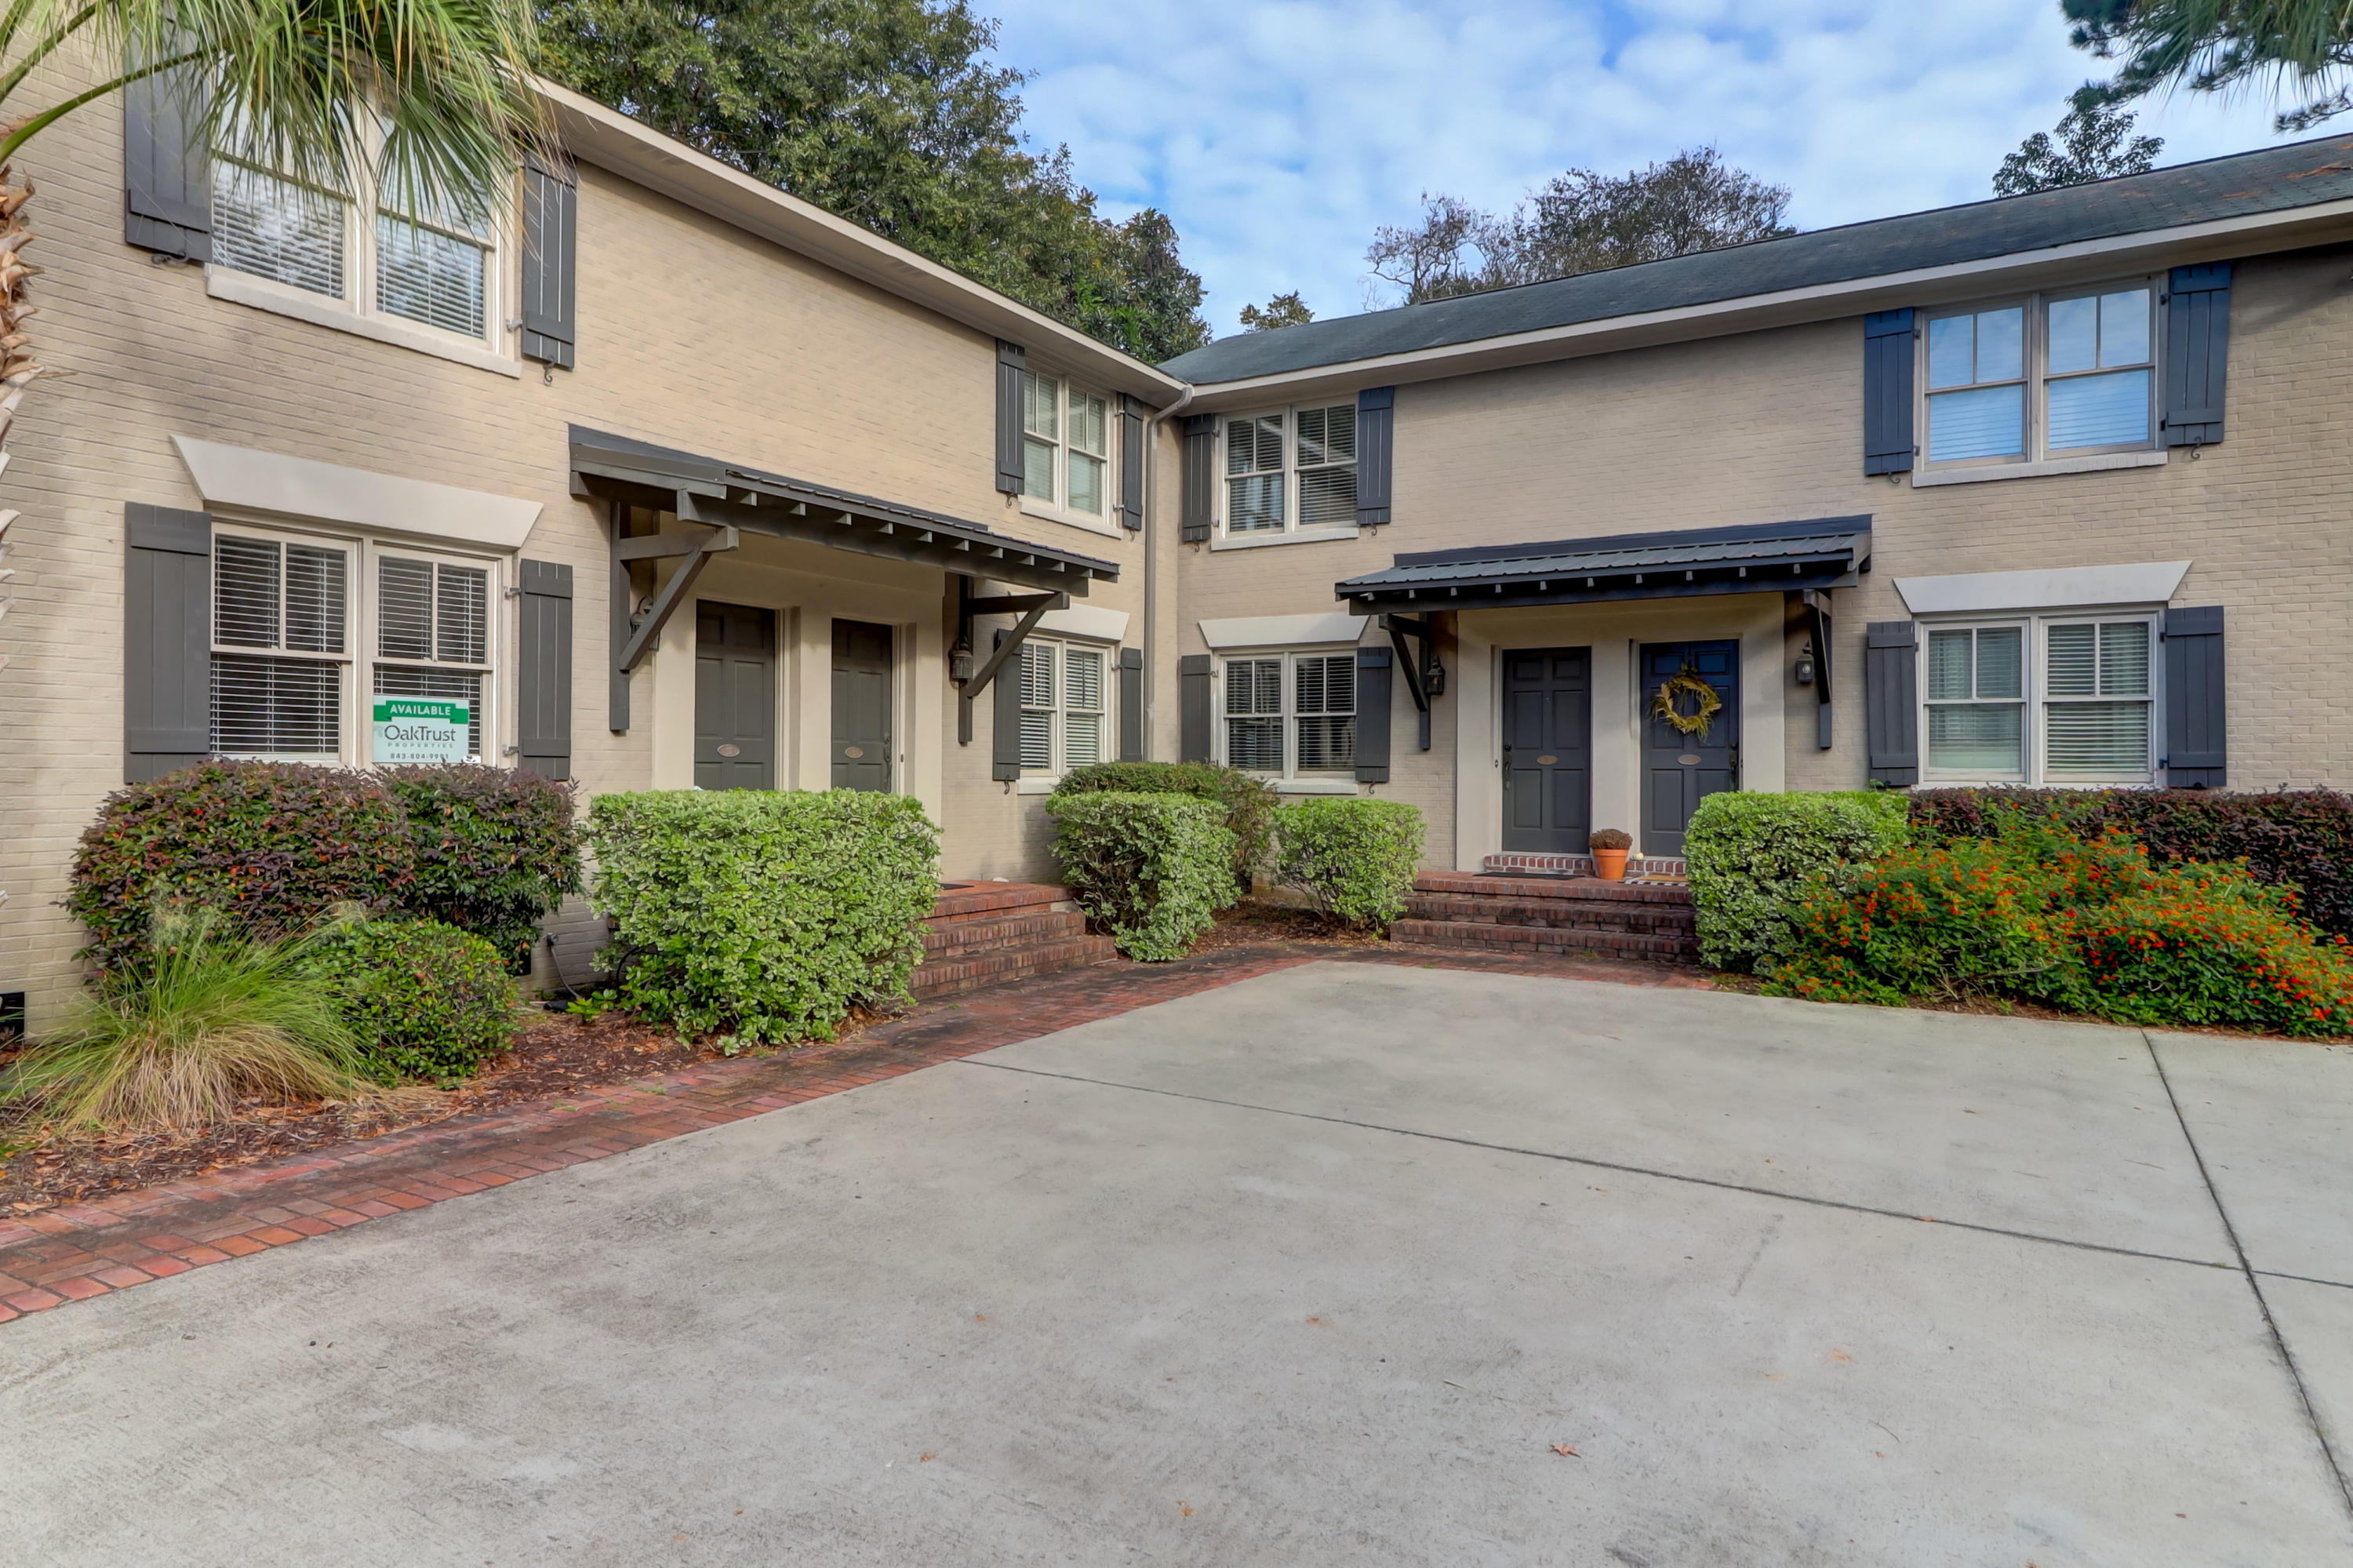 Palmetto Park Place Homes For Sale - 554 Savannah, Charleston, SC - 17